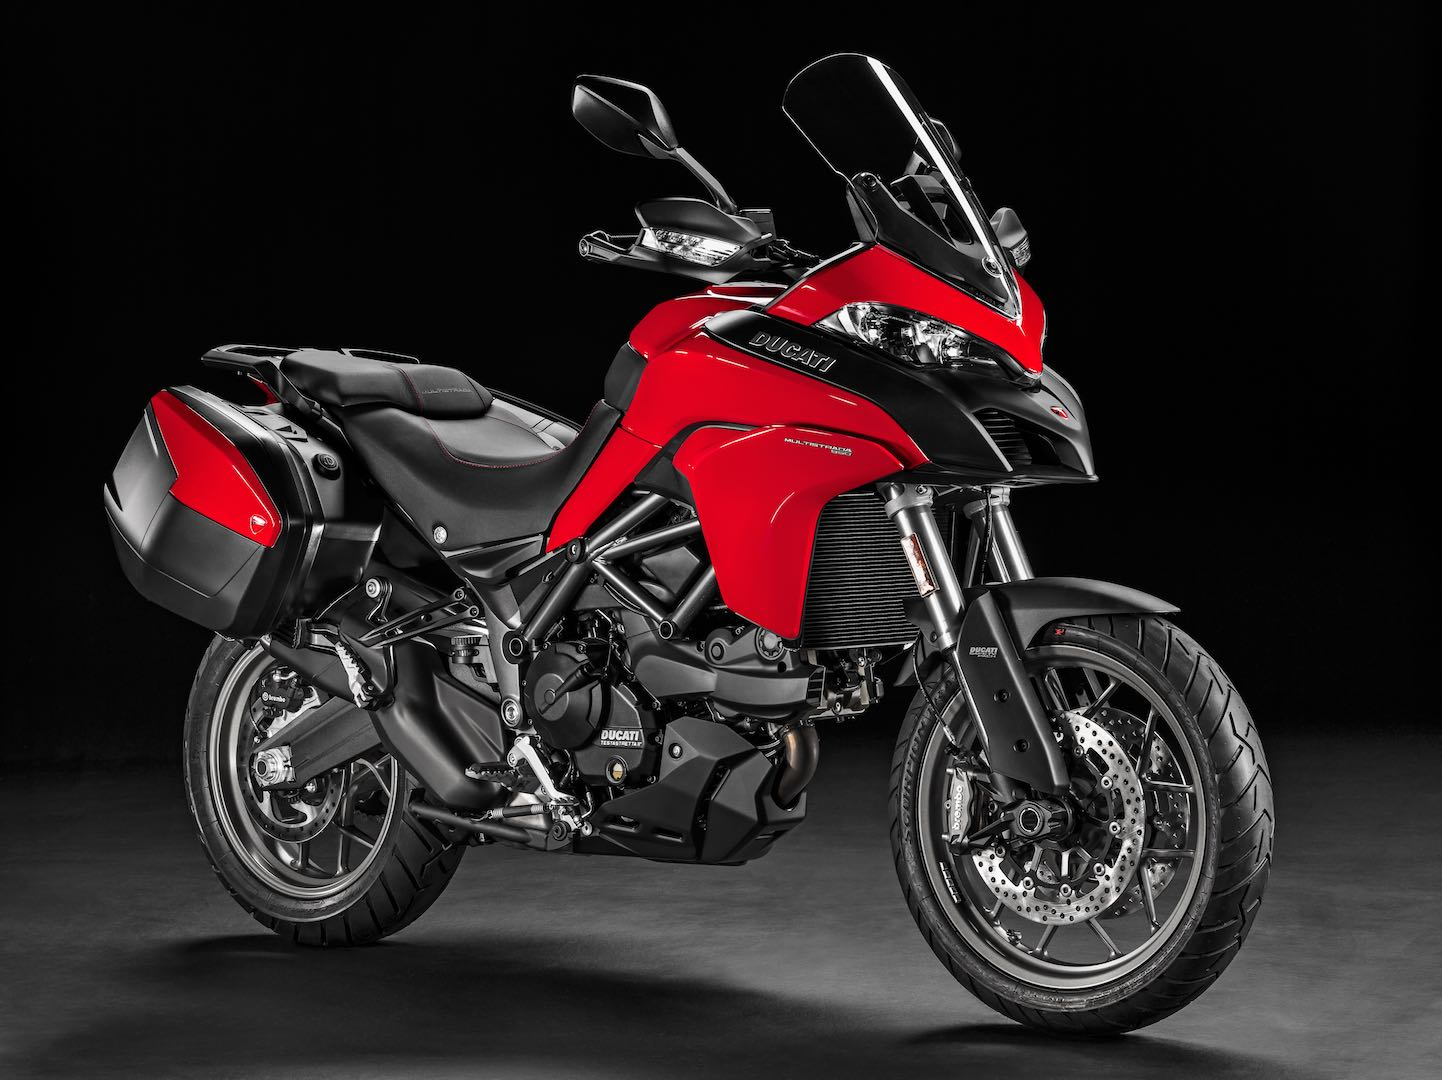 2017 ducati multistrada 950 first look 12 fast facts. Black Bedroom Furniture Sets. Home Design Ideas